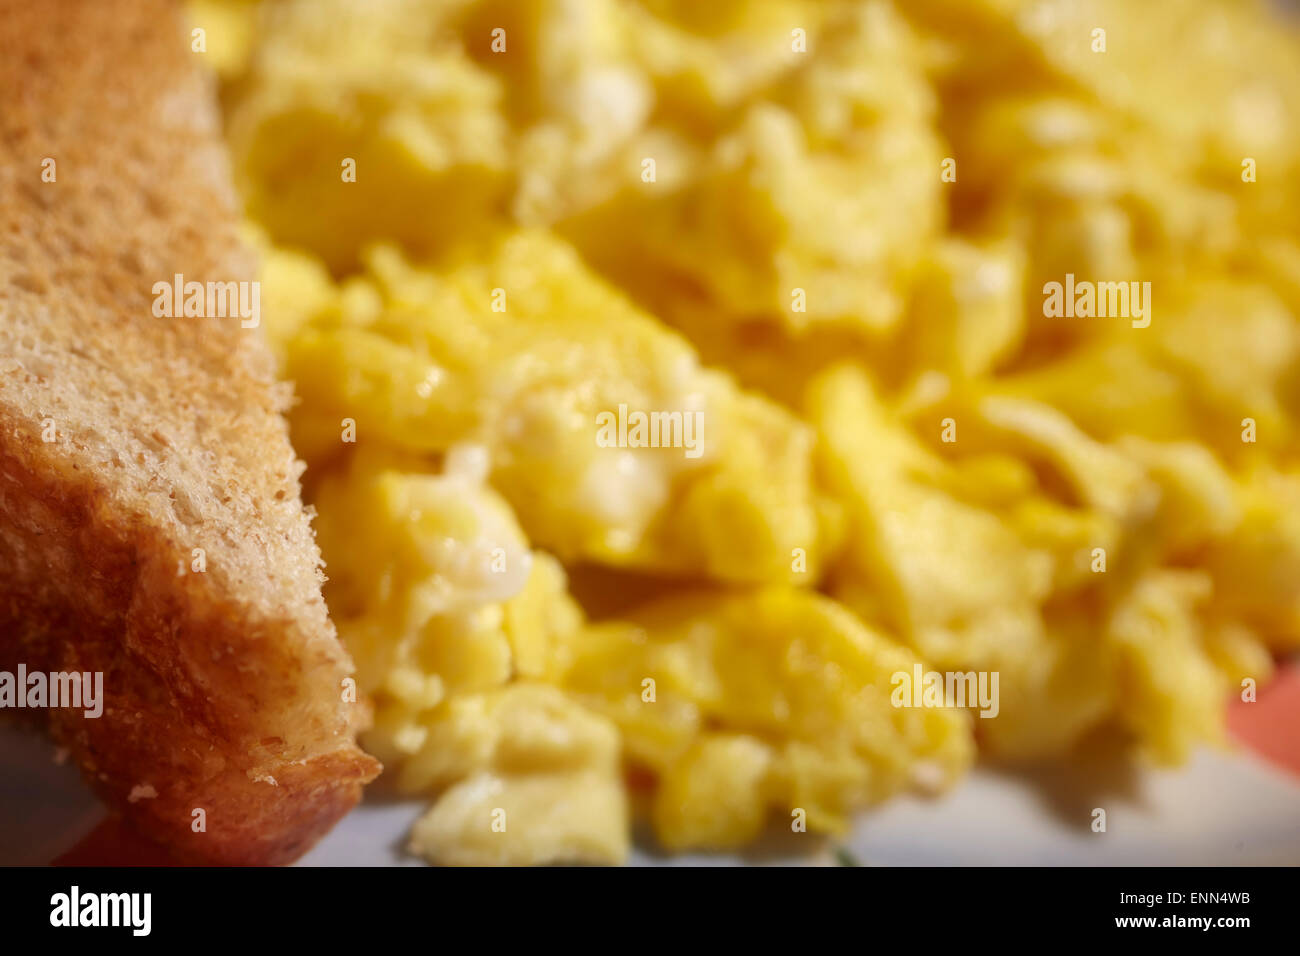 Scrambled eggs and whole wheat (or wholemeal) toast - Stock Image